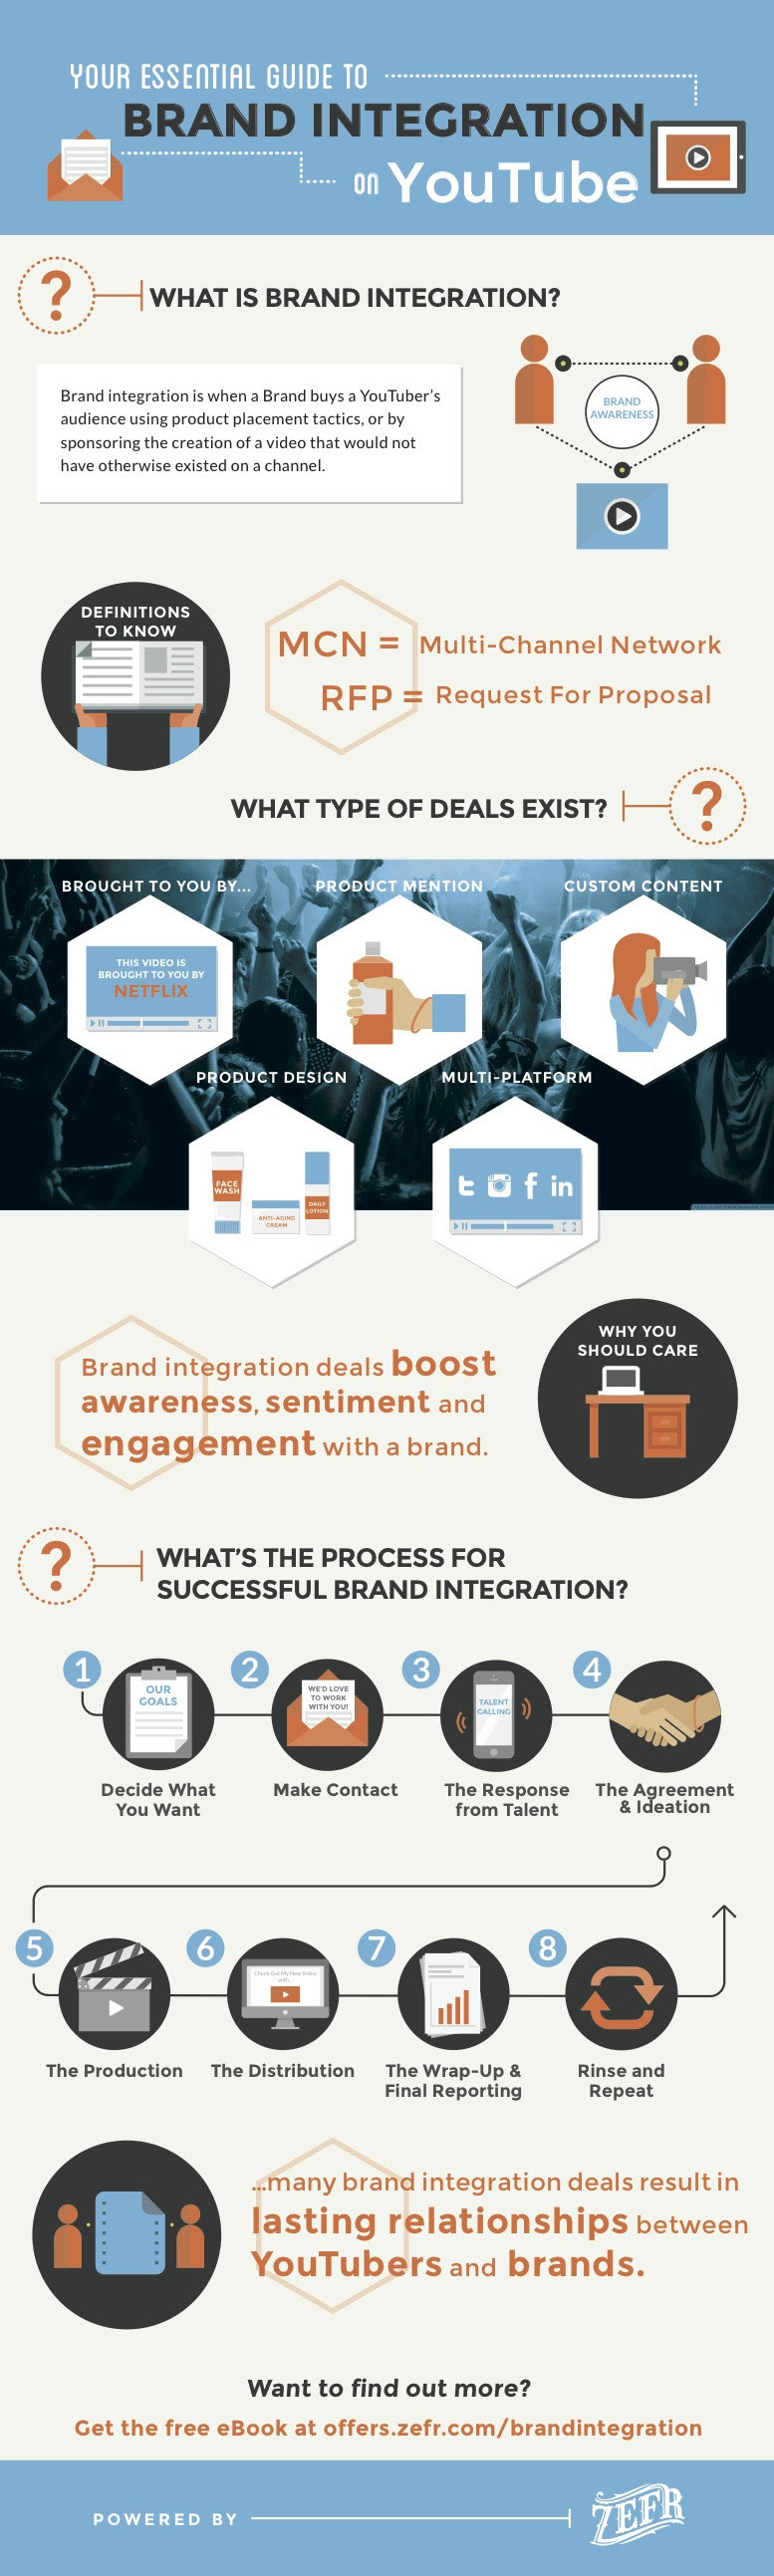 Infographic: Your Essential Guide to Brand Integration on YouTube